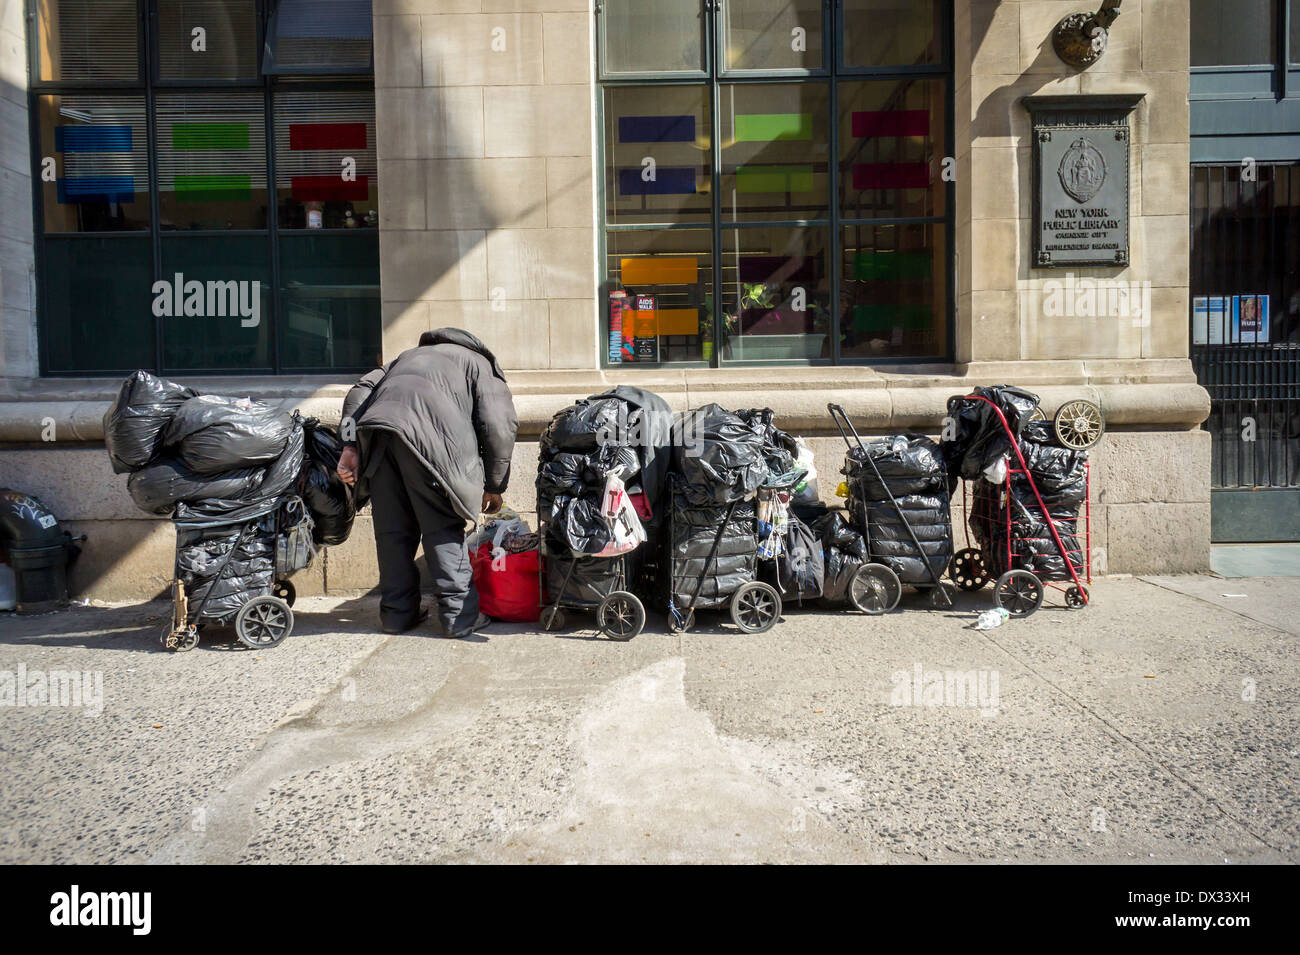 A hoarder with his possessions in front of the New York Public Library in the Chelsea neighborhood of New York - Stock Image